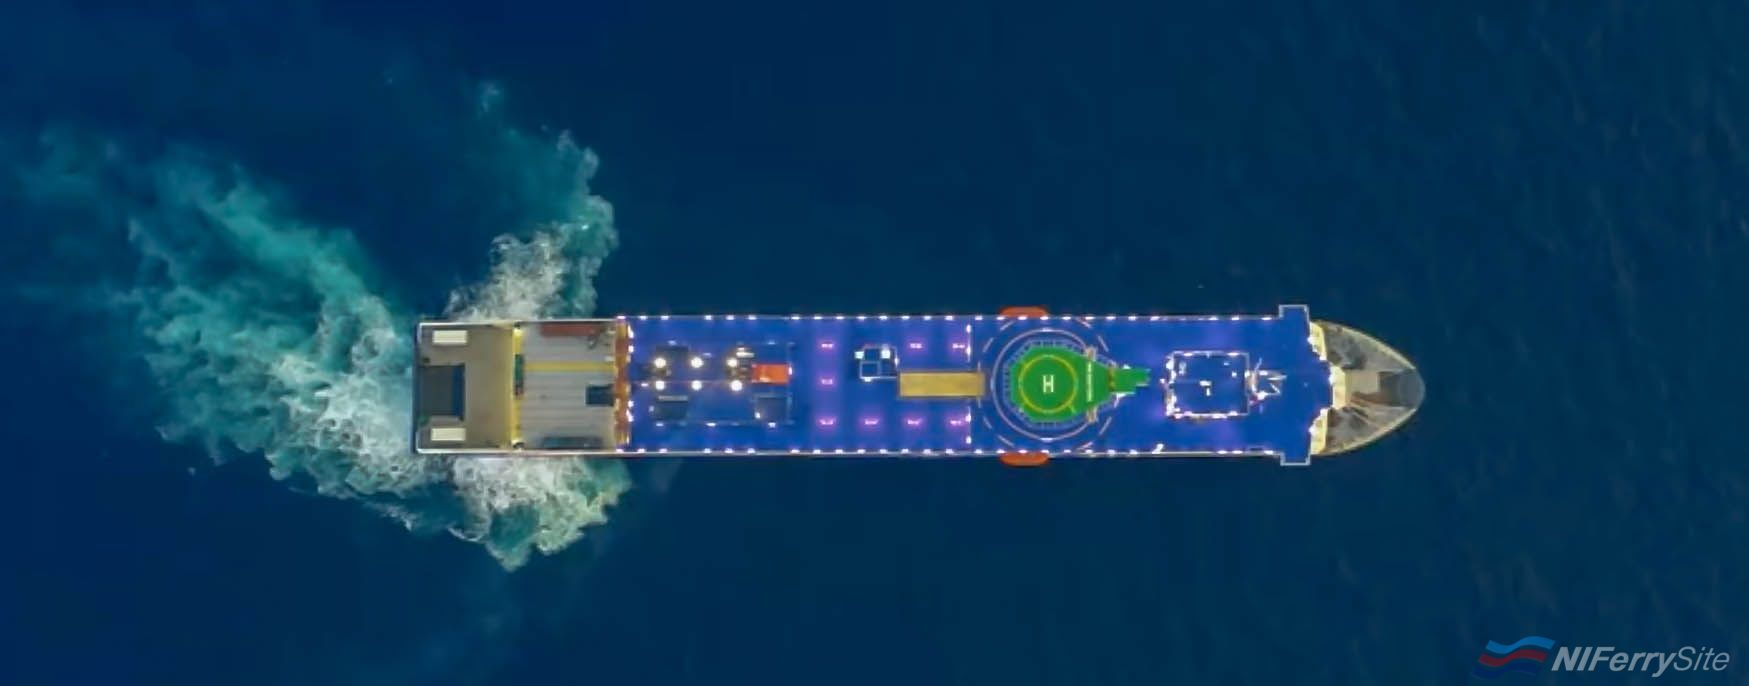 A view from above STENA ESTRID taken during her sea trials. China Merchants (video screenshot)